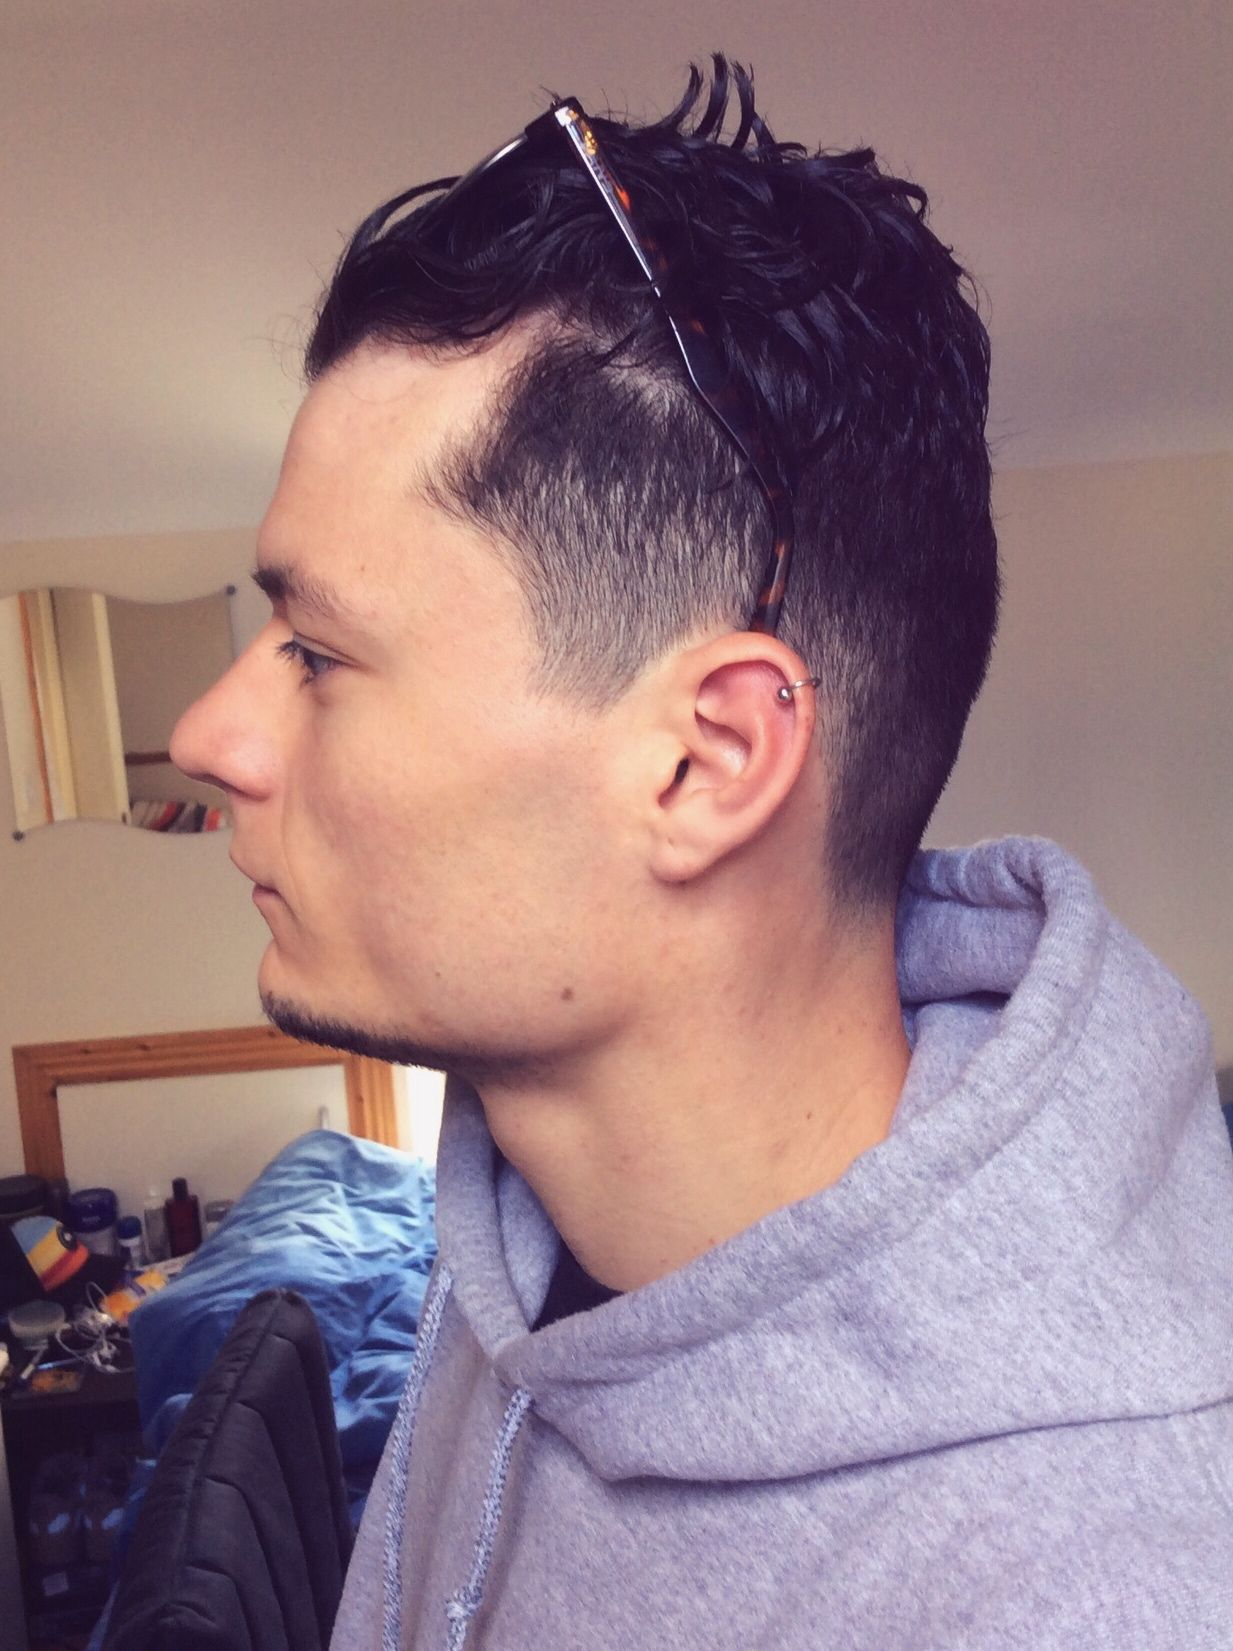 Helix Piercing Haircut Undercut Gles Men Fade Curly Cartilage Hairstyle Curlyhair